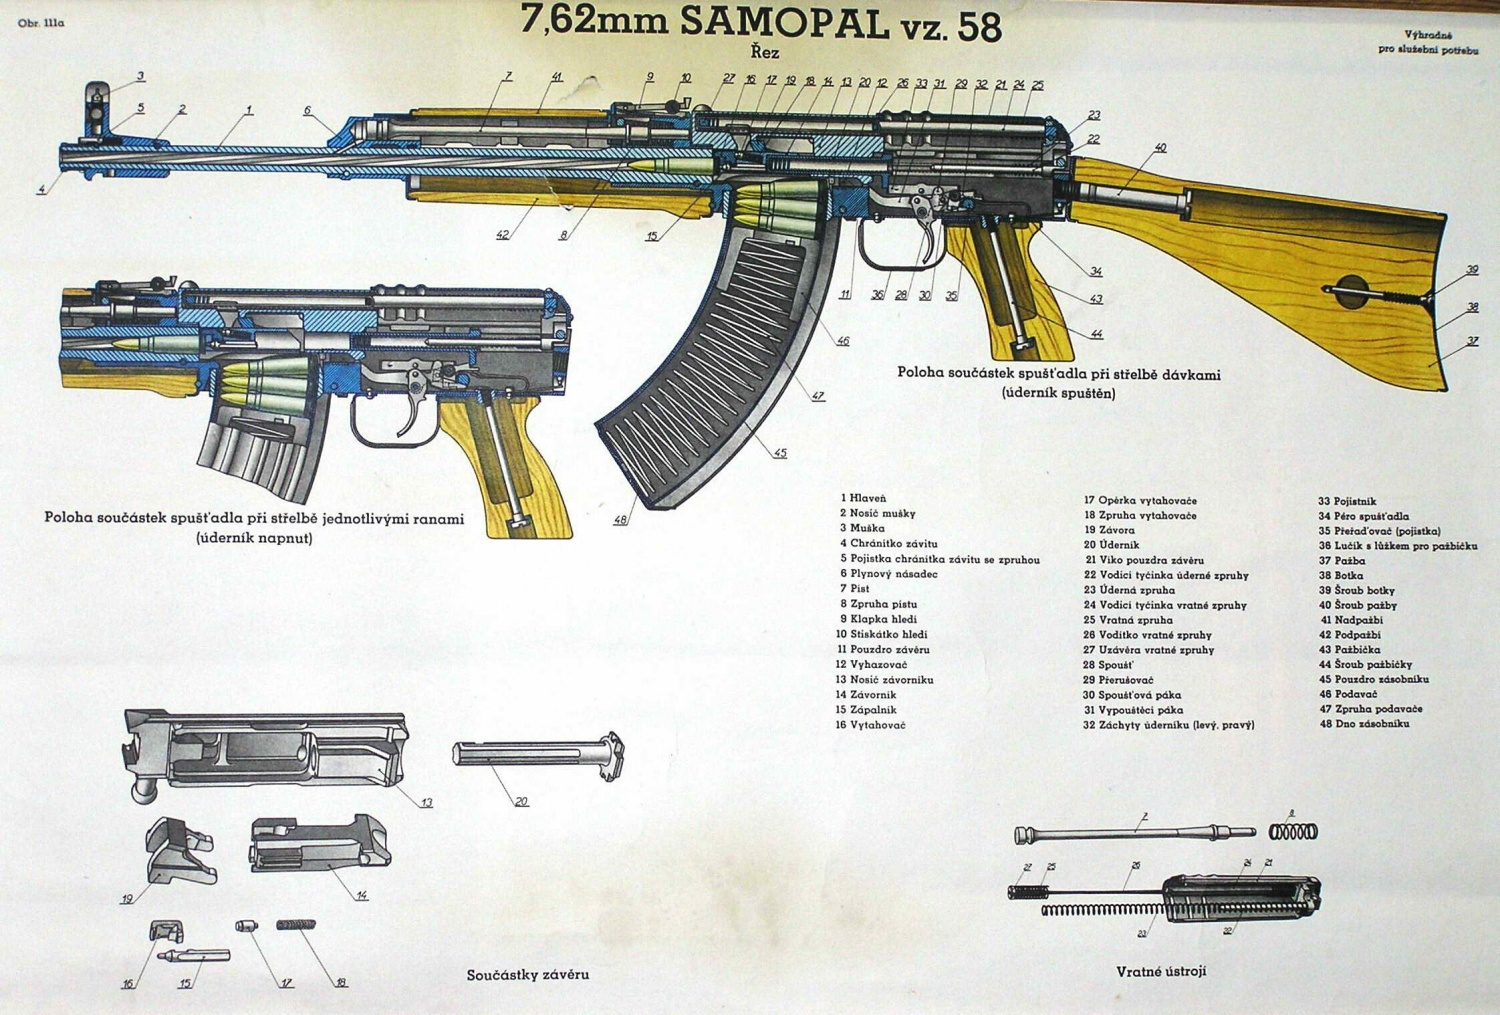 10 Reasons Why Vz. 58 is NOT an AK (poster)